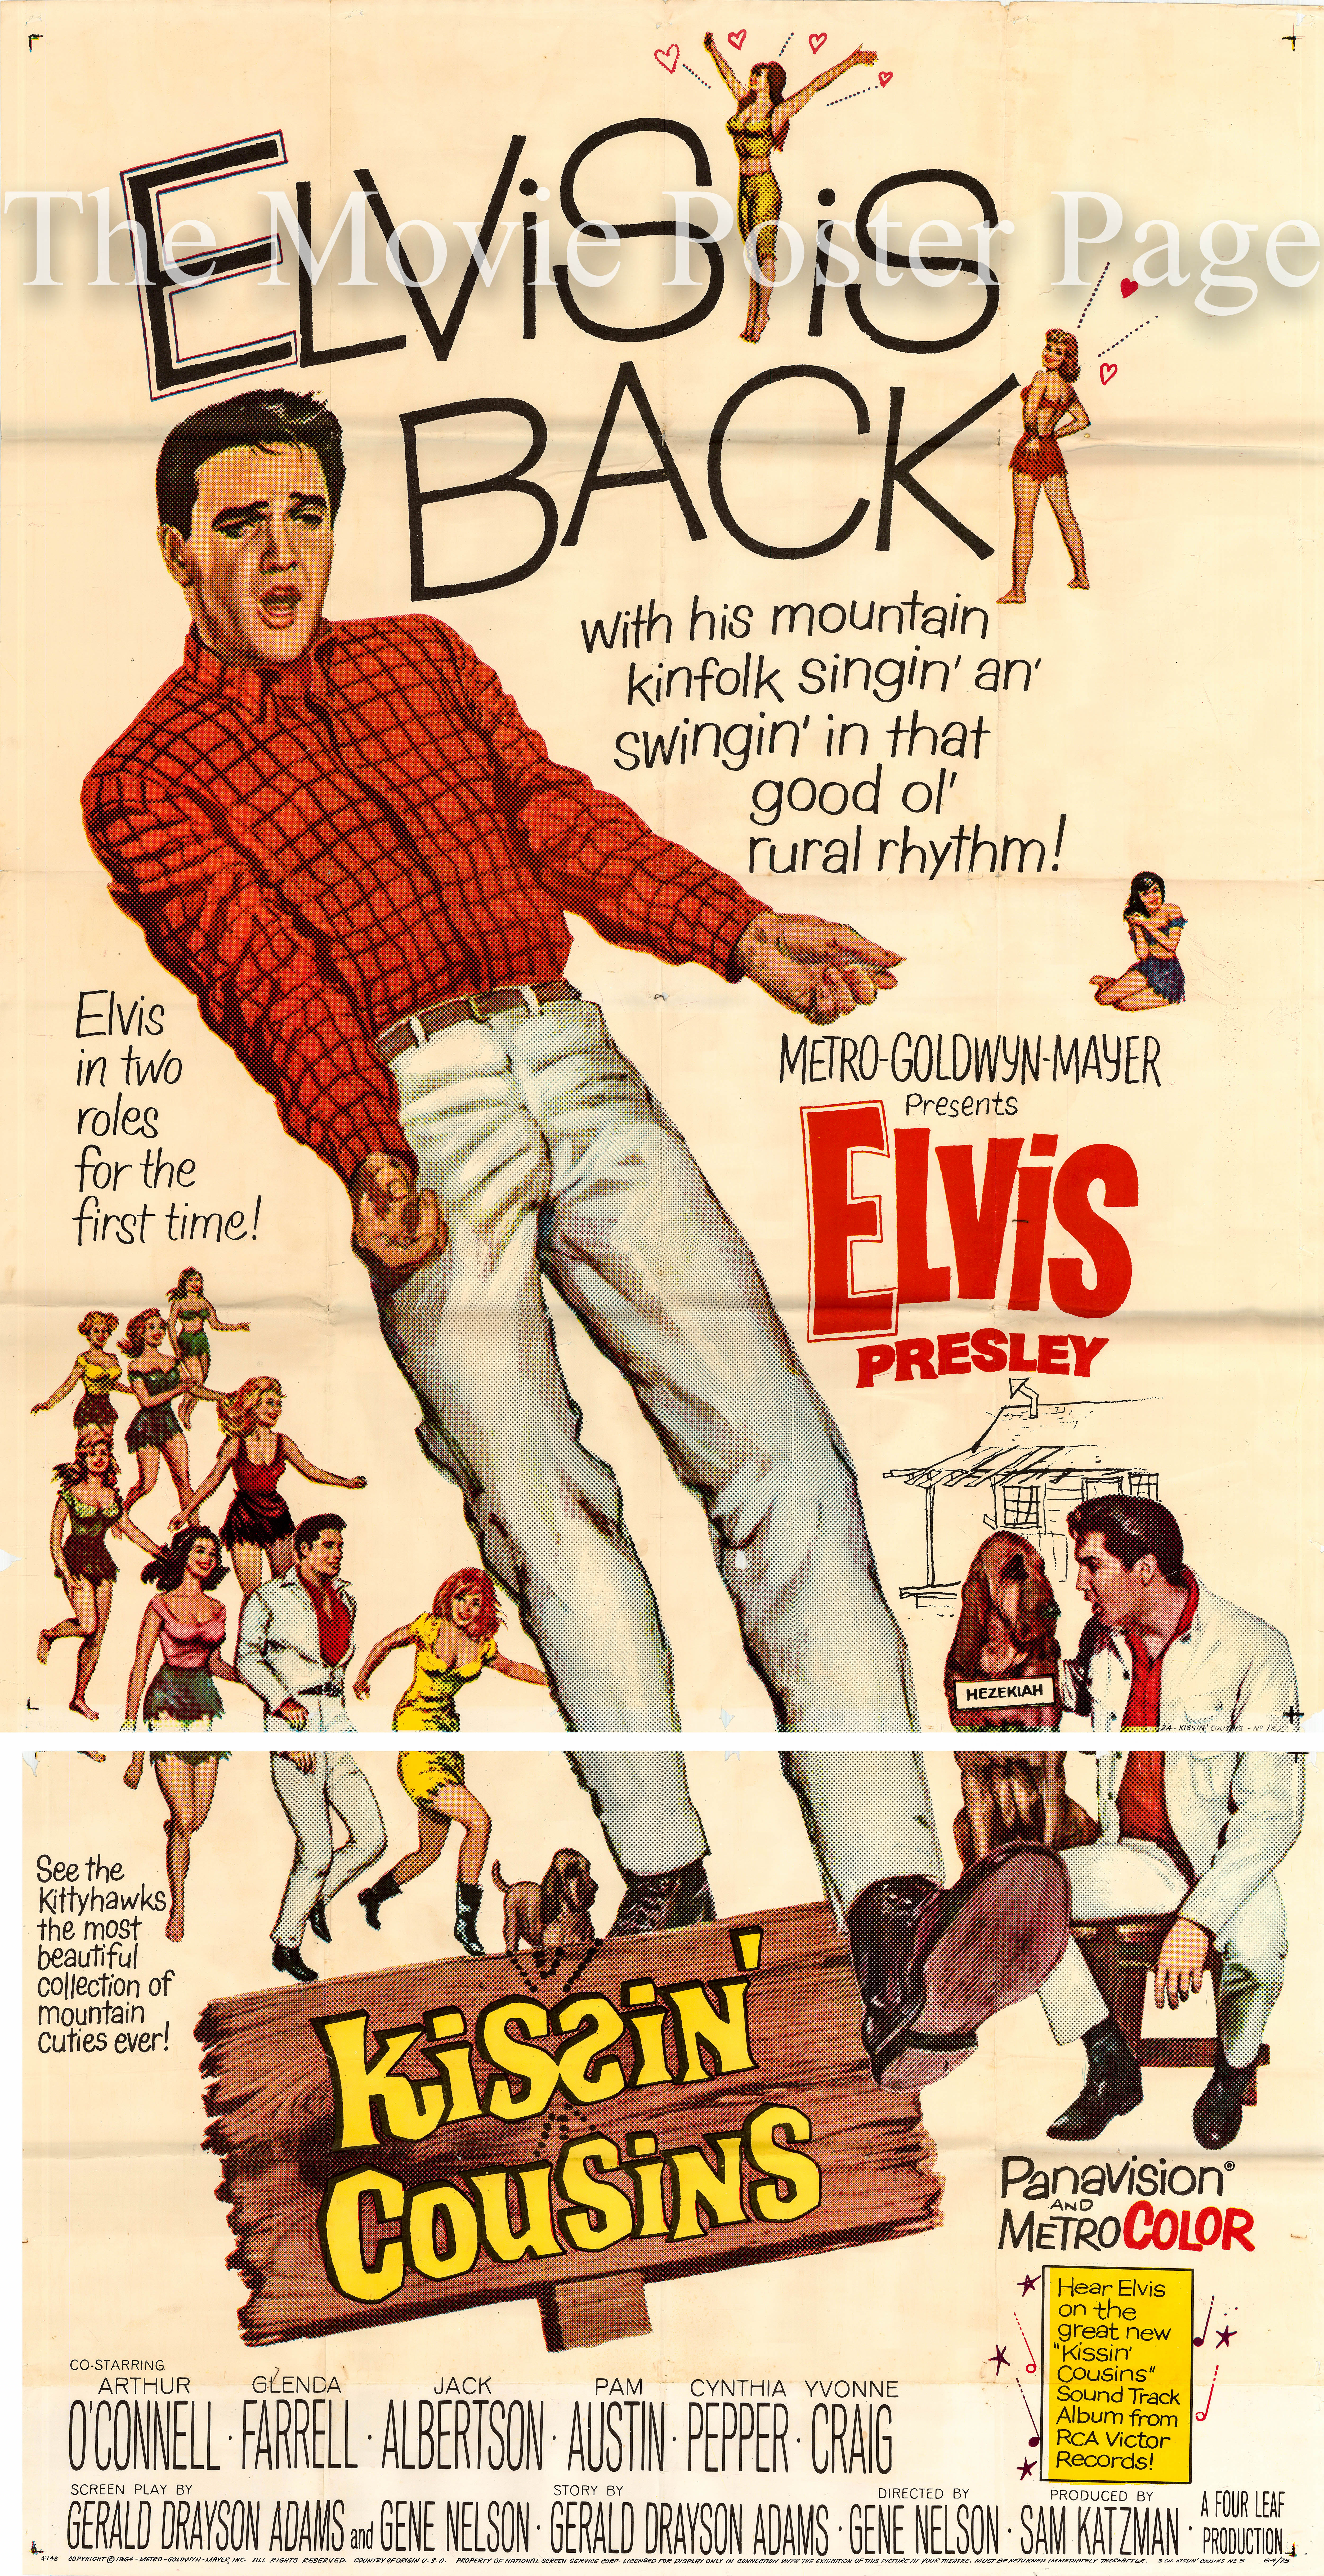 Pictured is a US three-sheet promotional poster for the 1964 Gene Nelson film Kissin' Cousins starring Elvis Presley.